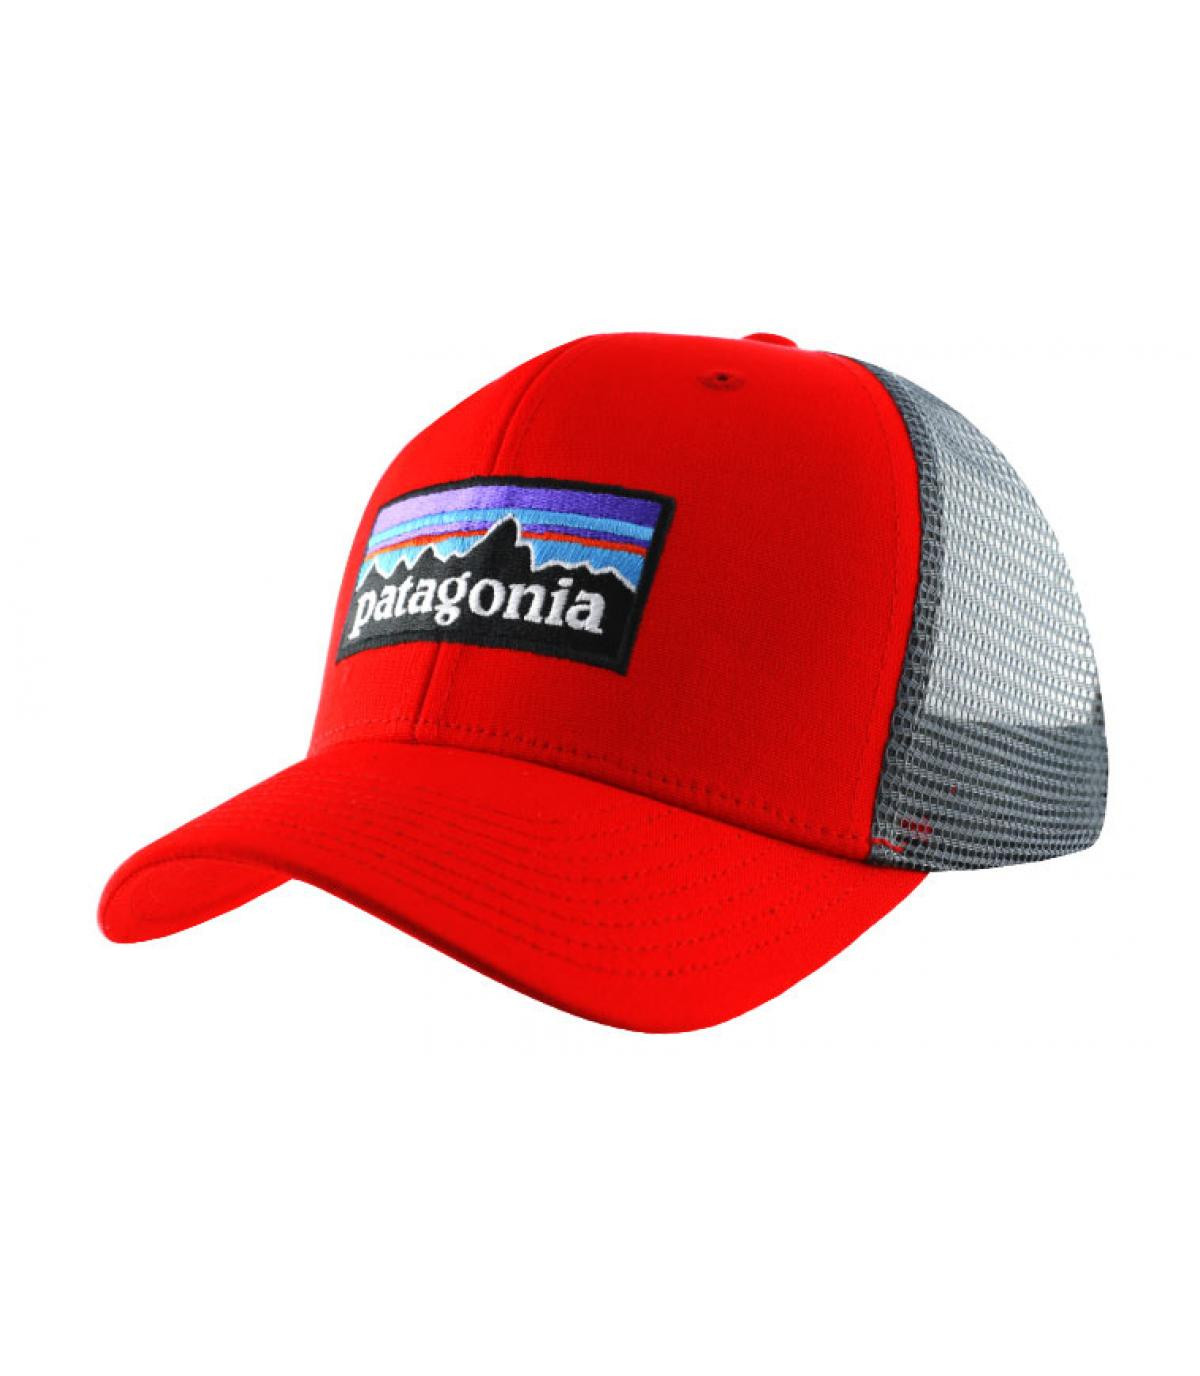 71c504d68b30d Red trucker cap - P6 logo trucker hat french red by Patagonia. Headict